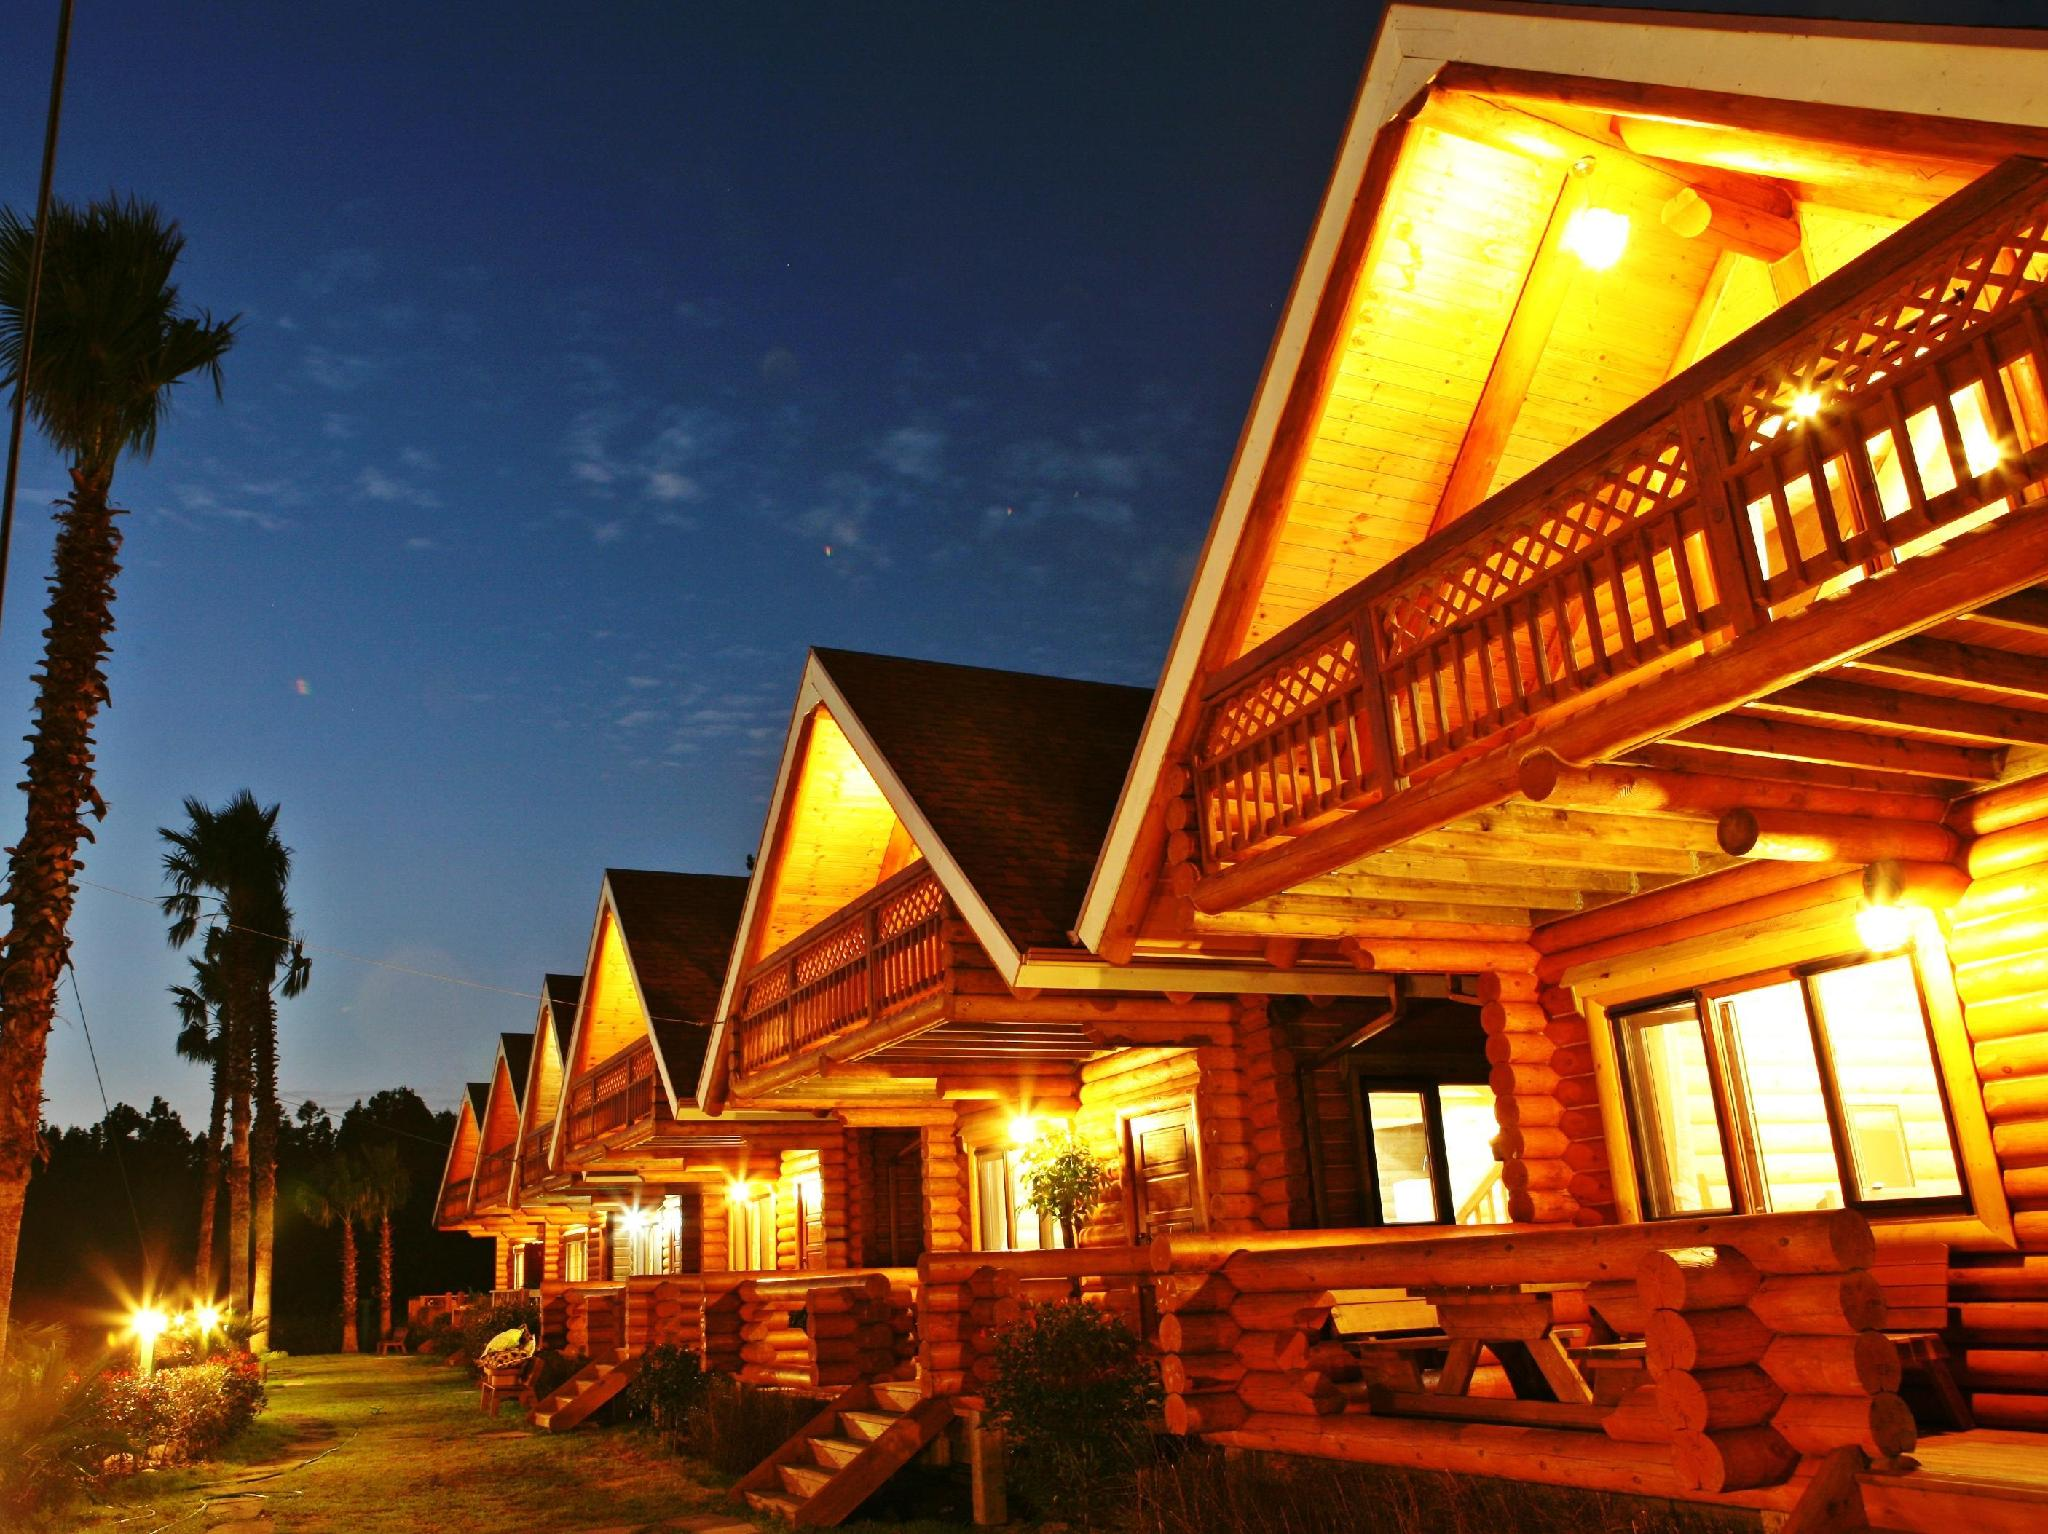 Jungmun Log Pension and Resort31